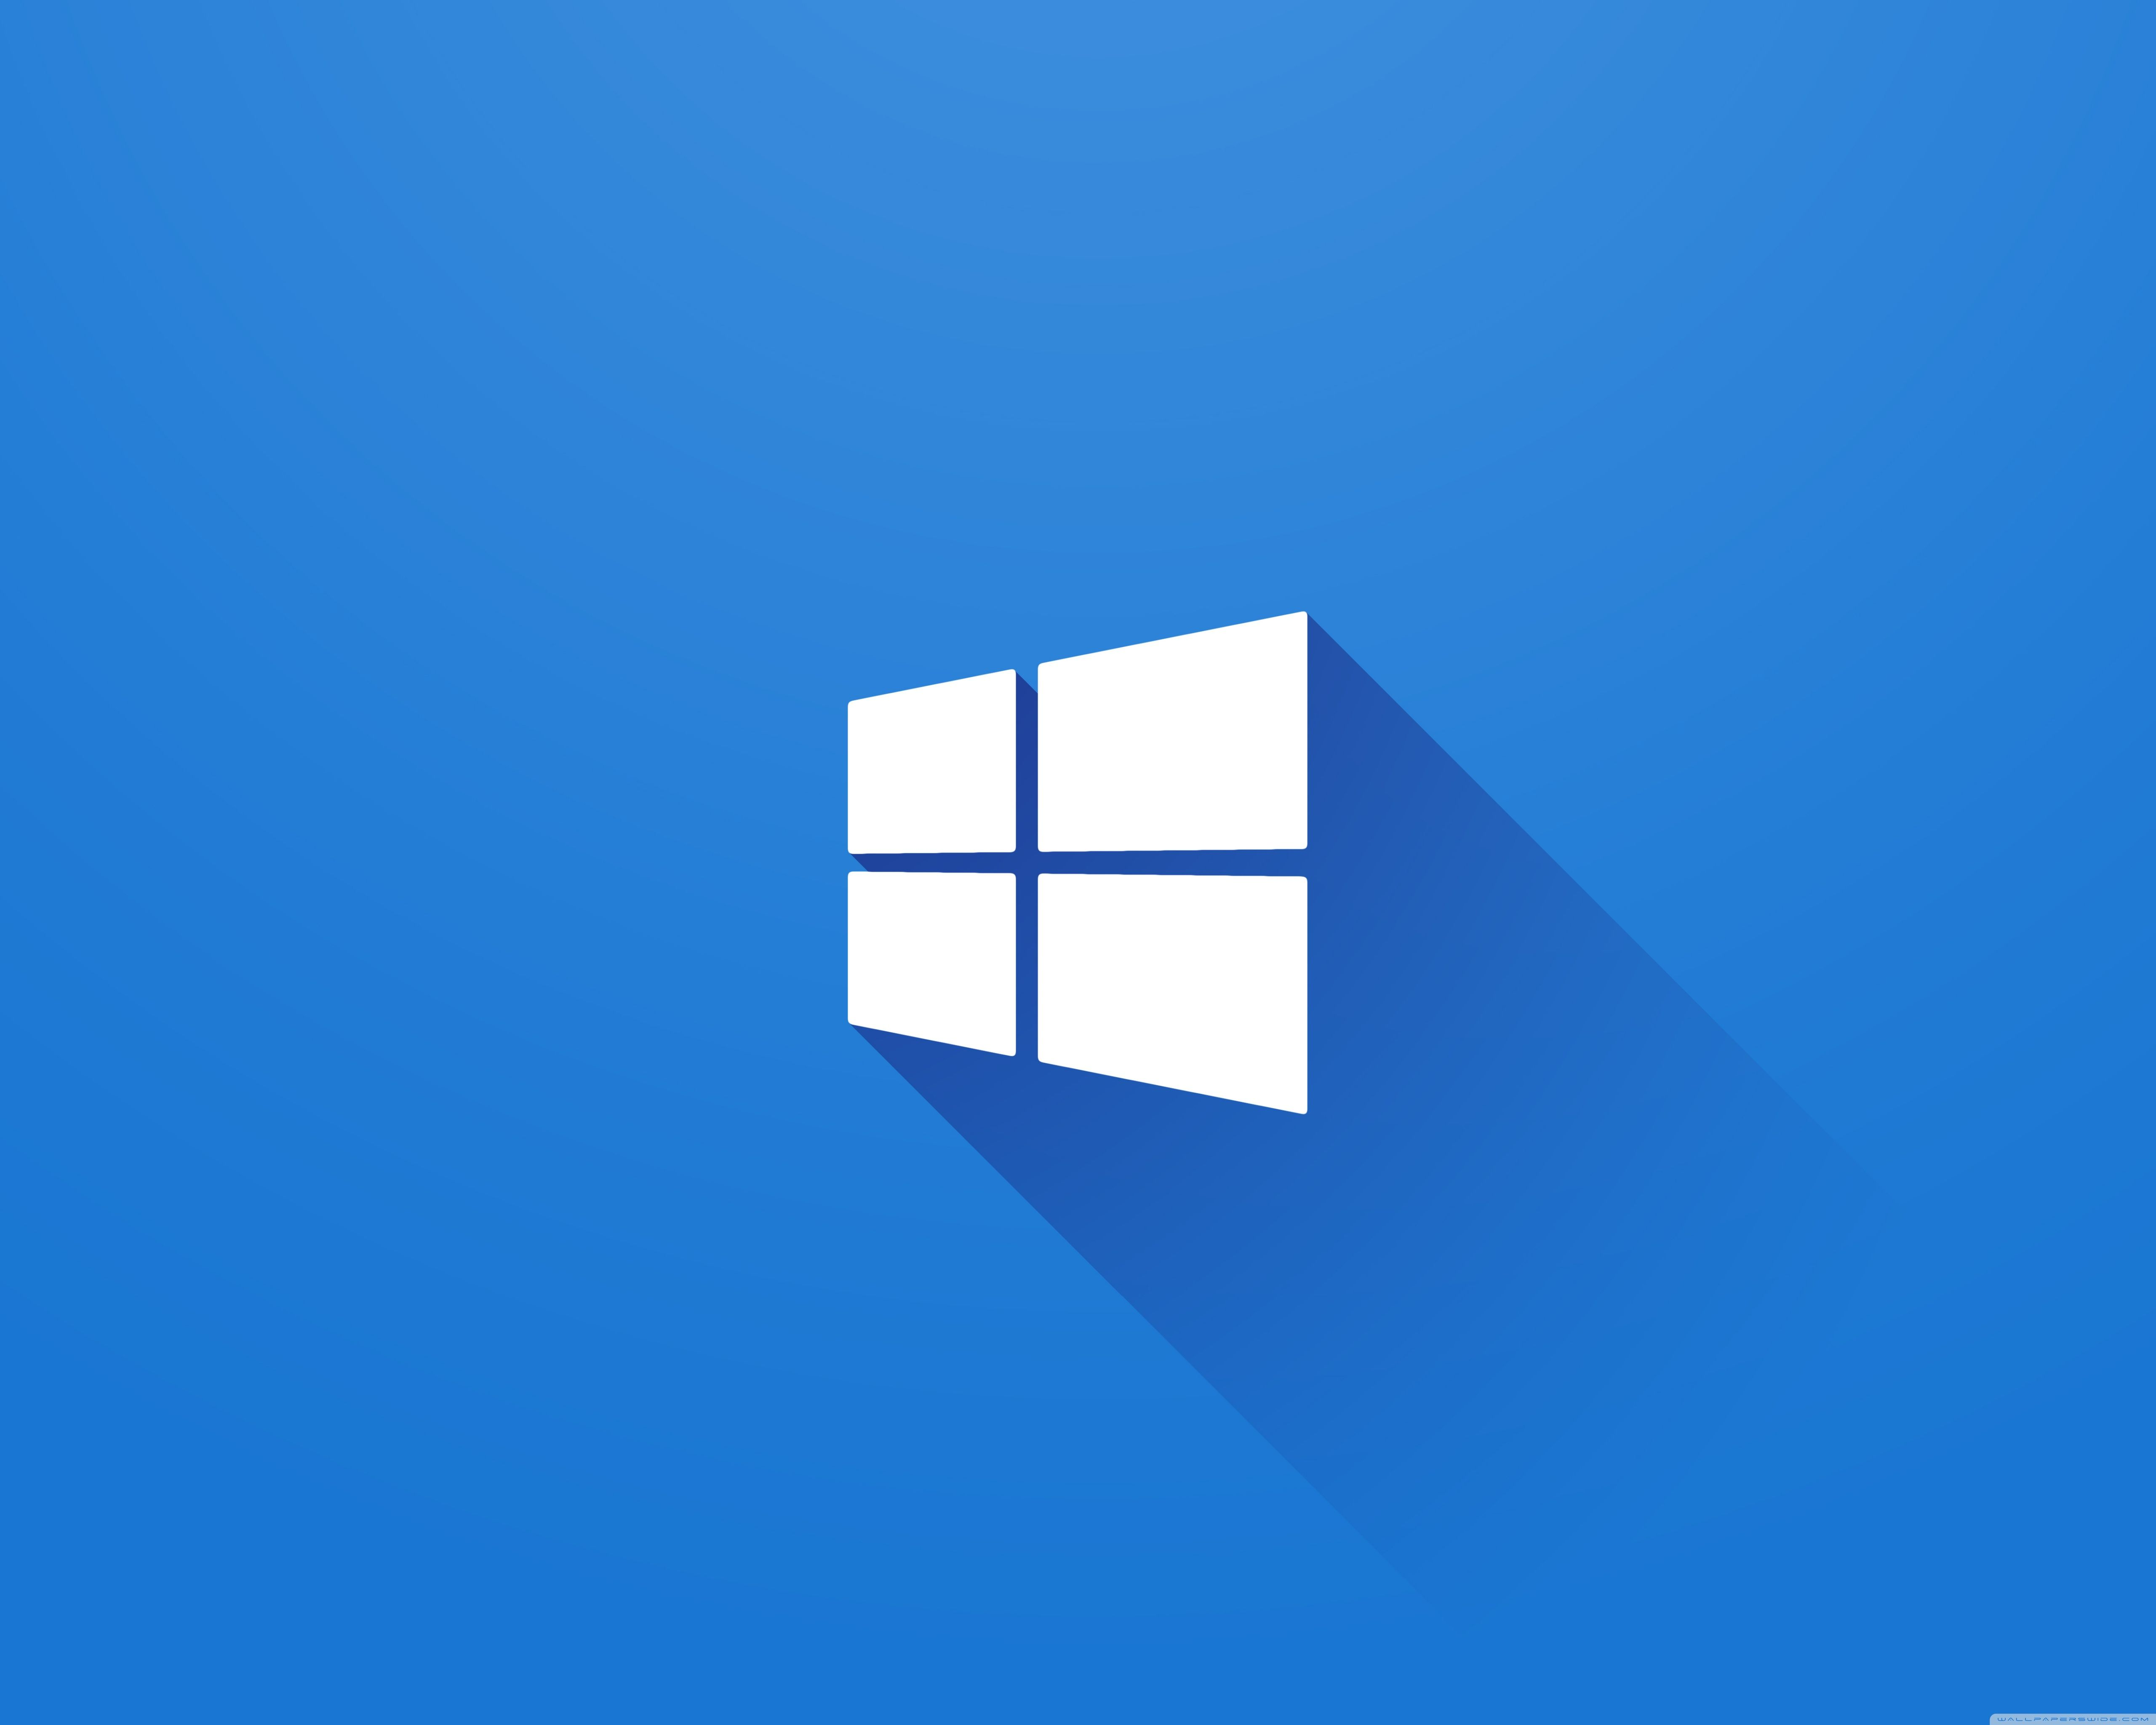 search results for windows 10 official hd wallpaper adorable wallpapers